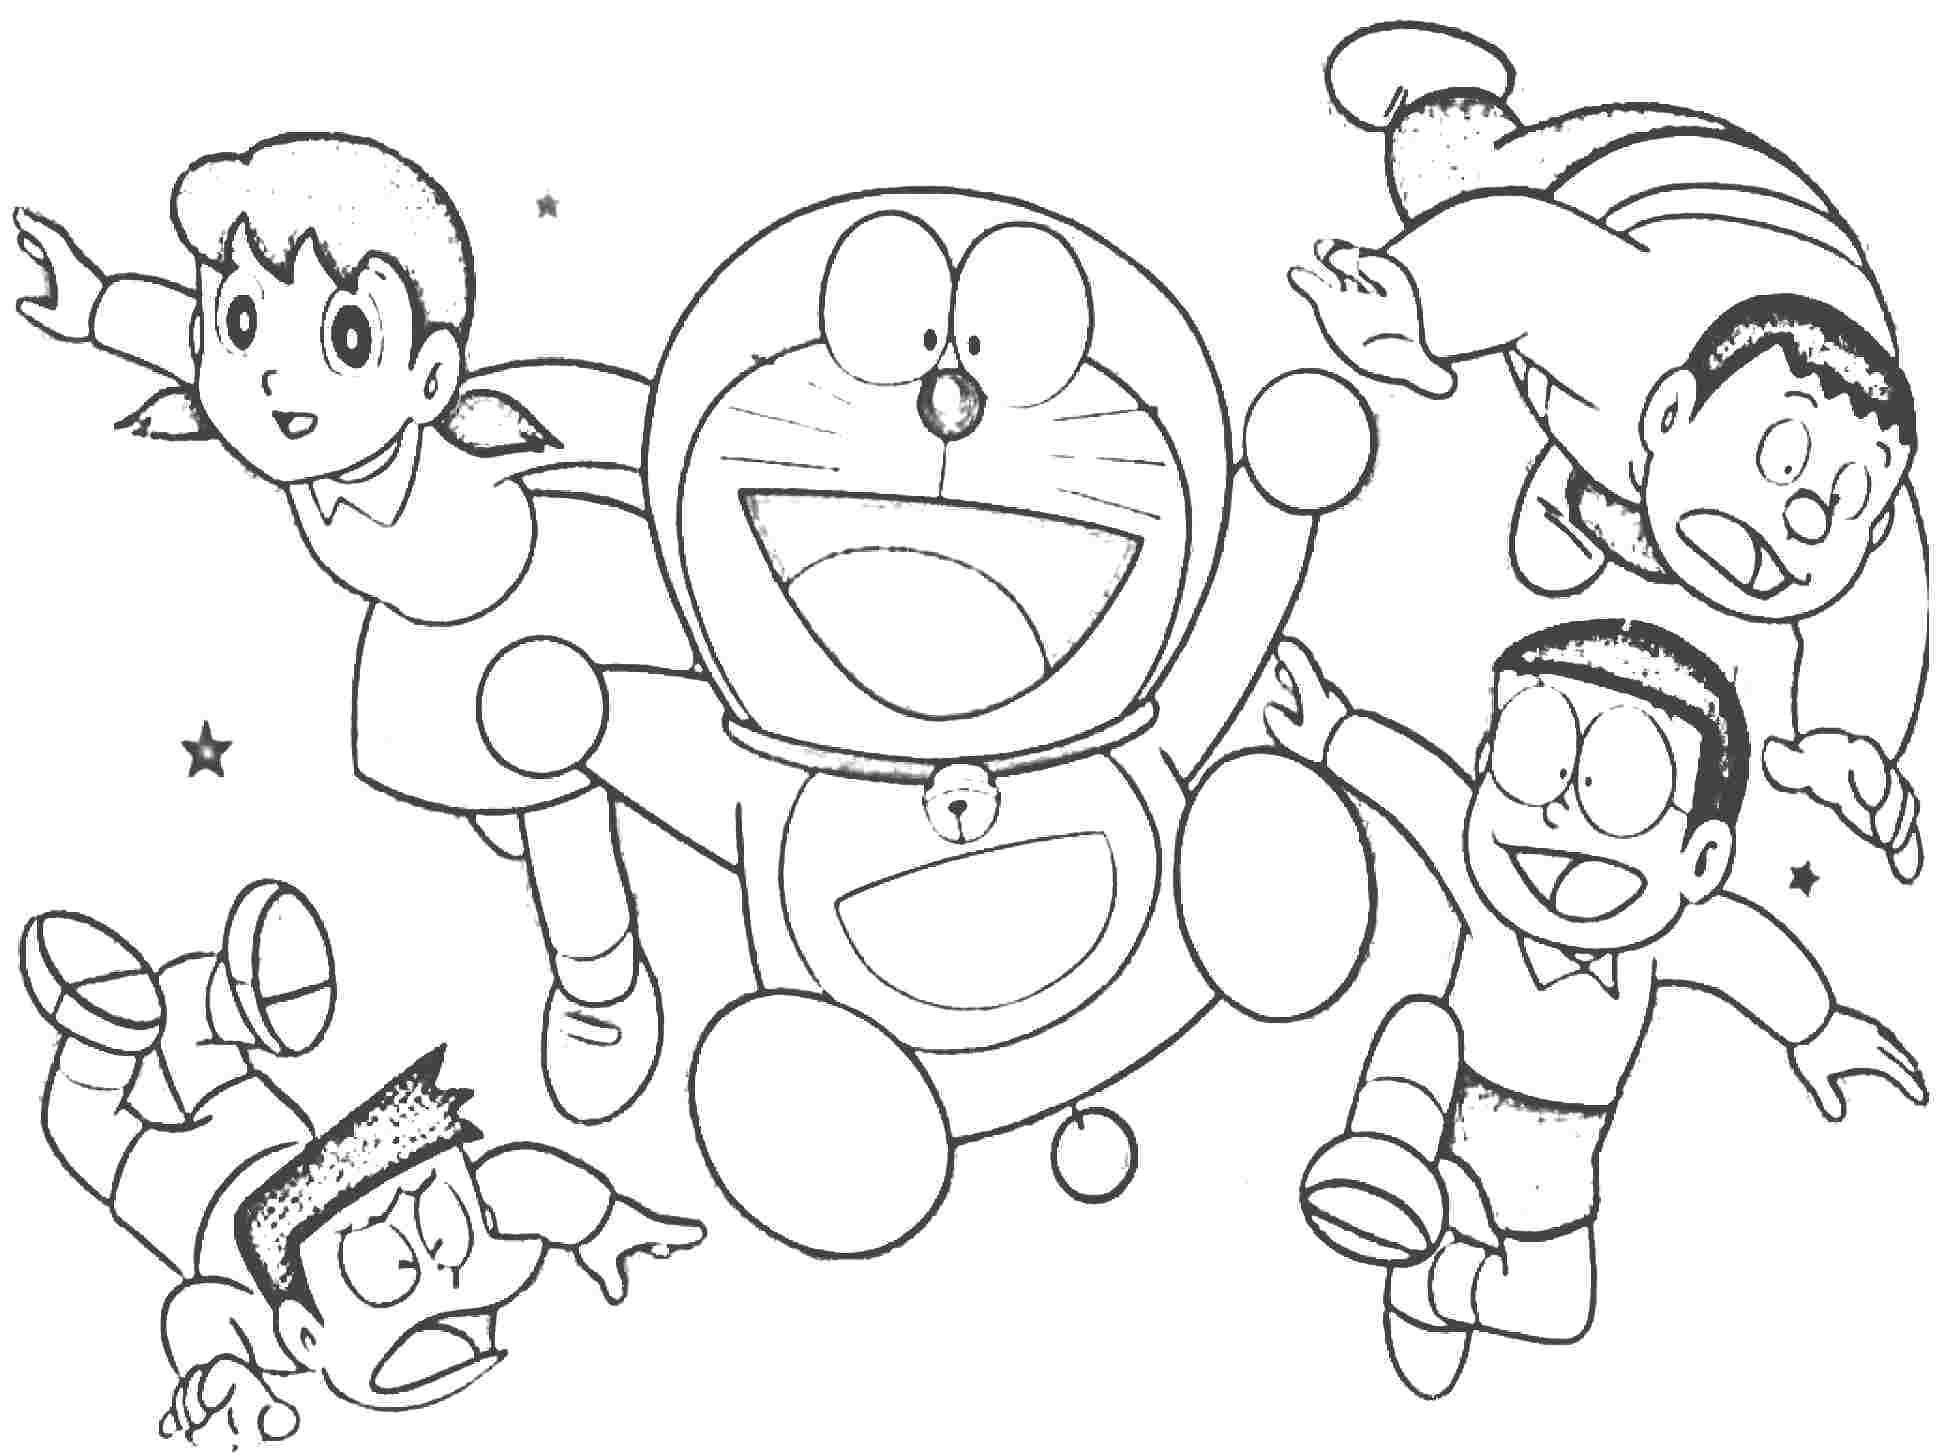 Pin by Esther Ling on doraemon Pinterest Coloring books and Toy